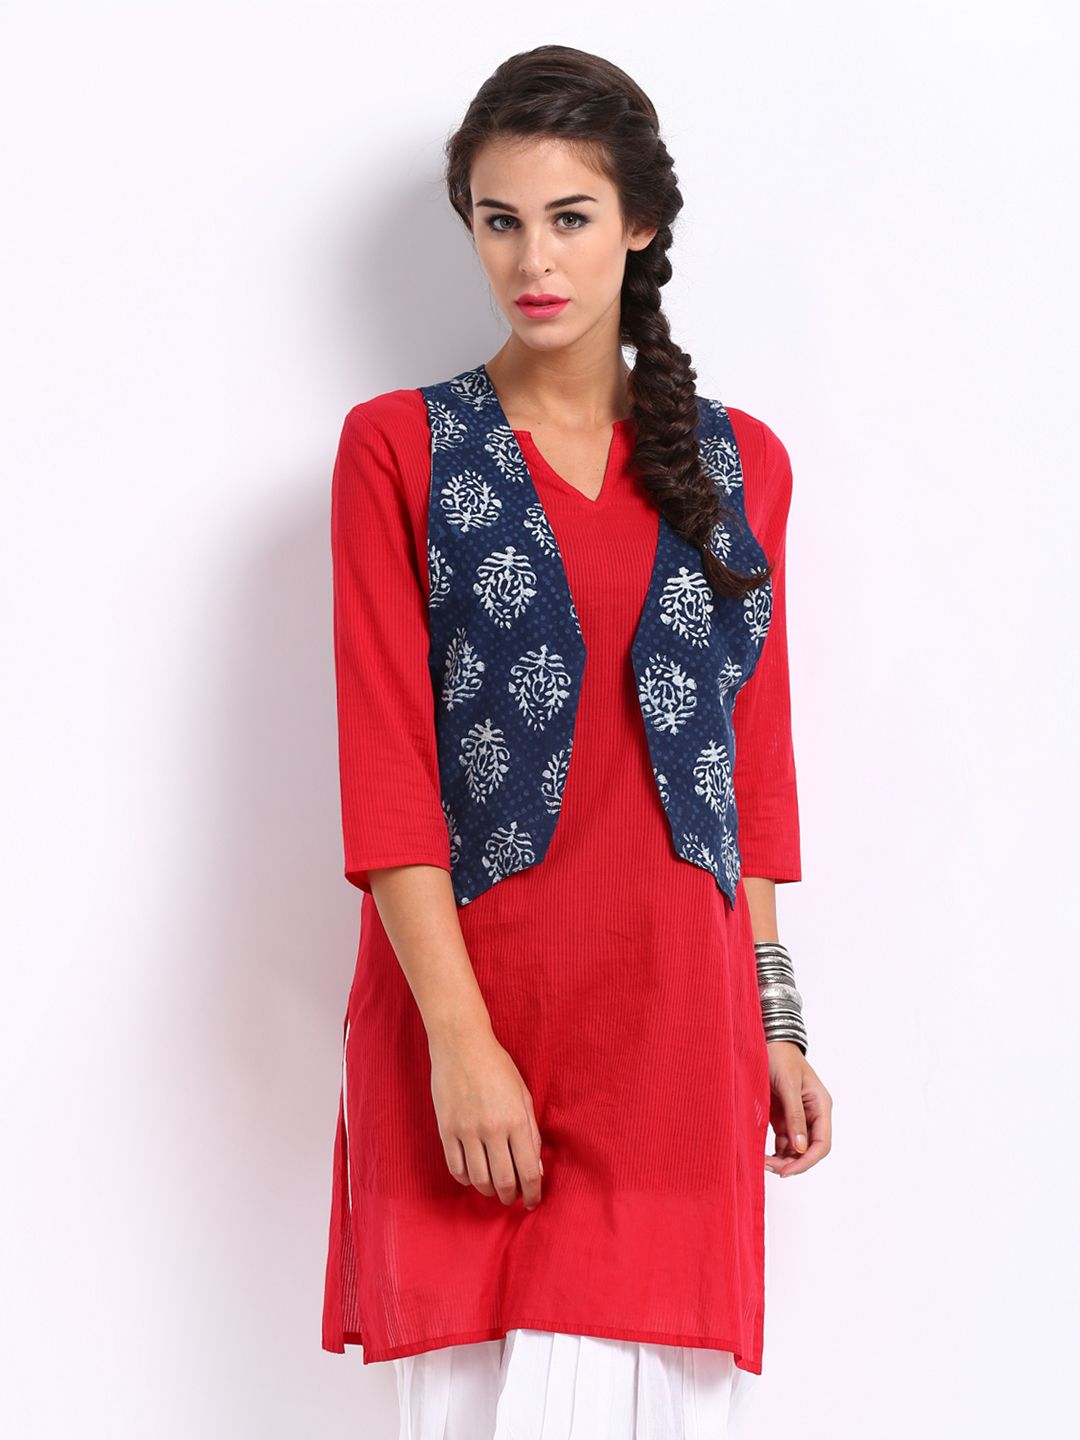 10 Styles Of Kurtis For Jeans Indie Desi Girl Chic